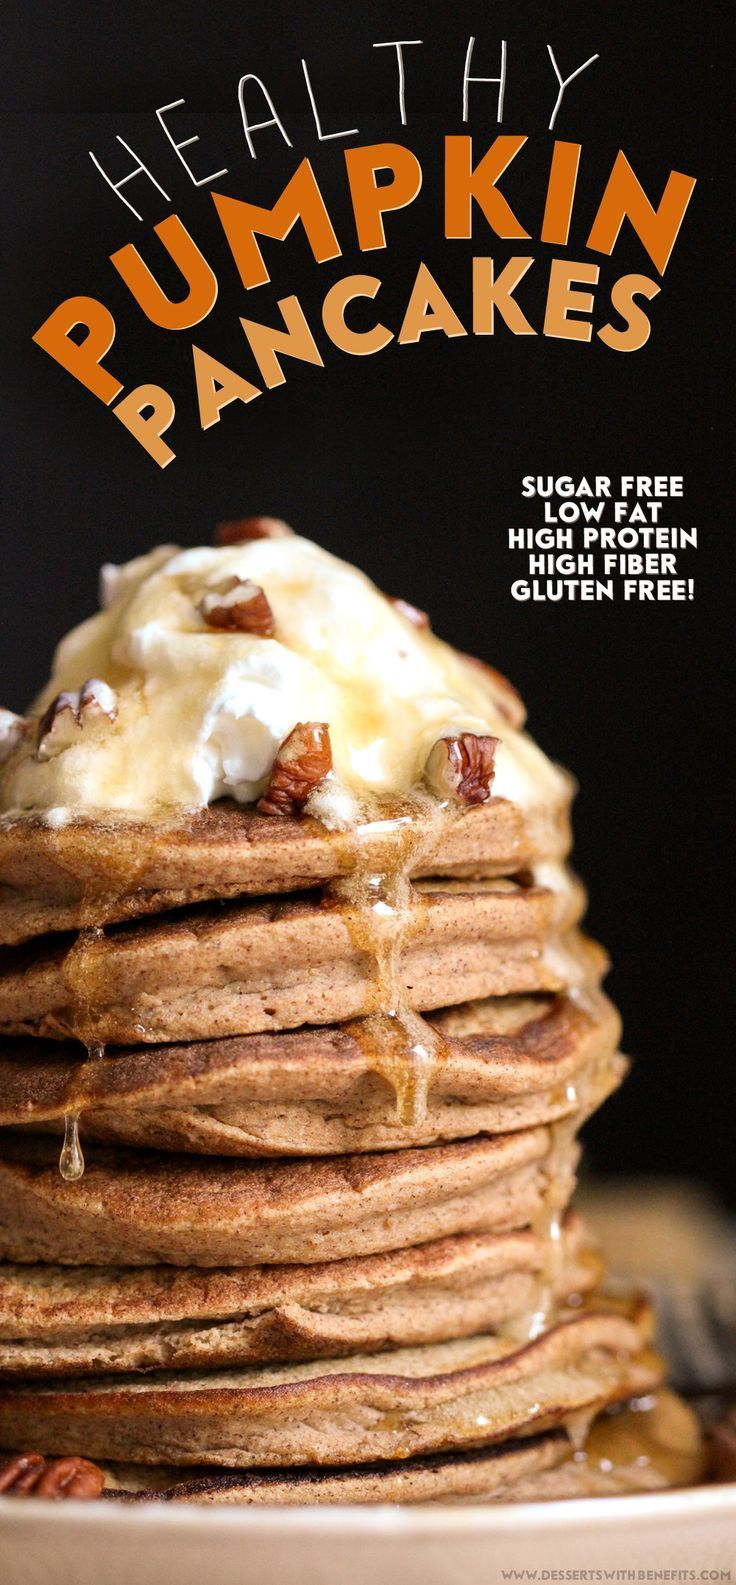 These light and fluffy Healthy Pumpkin Pancakes are secretly sugar free, low fat, high protein, high fiber, gluten free, AND dairy free! If you wake up in the morning immediately craving sweet, sweet, delicious food (welcome to the club!), then these pancakes are for YOU.